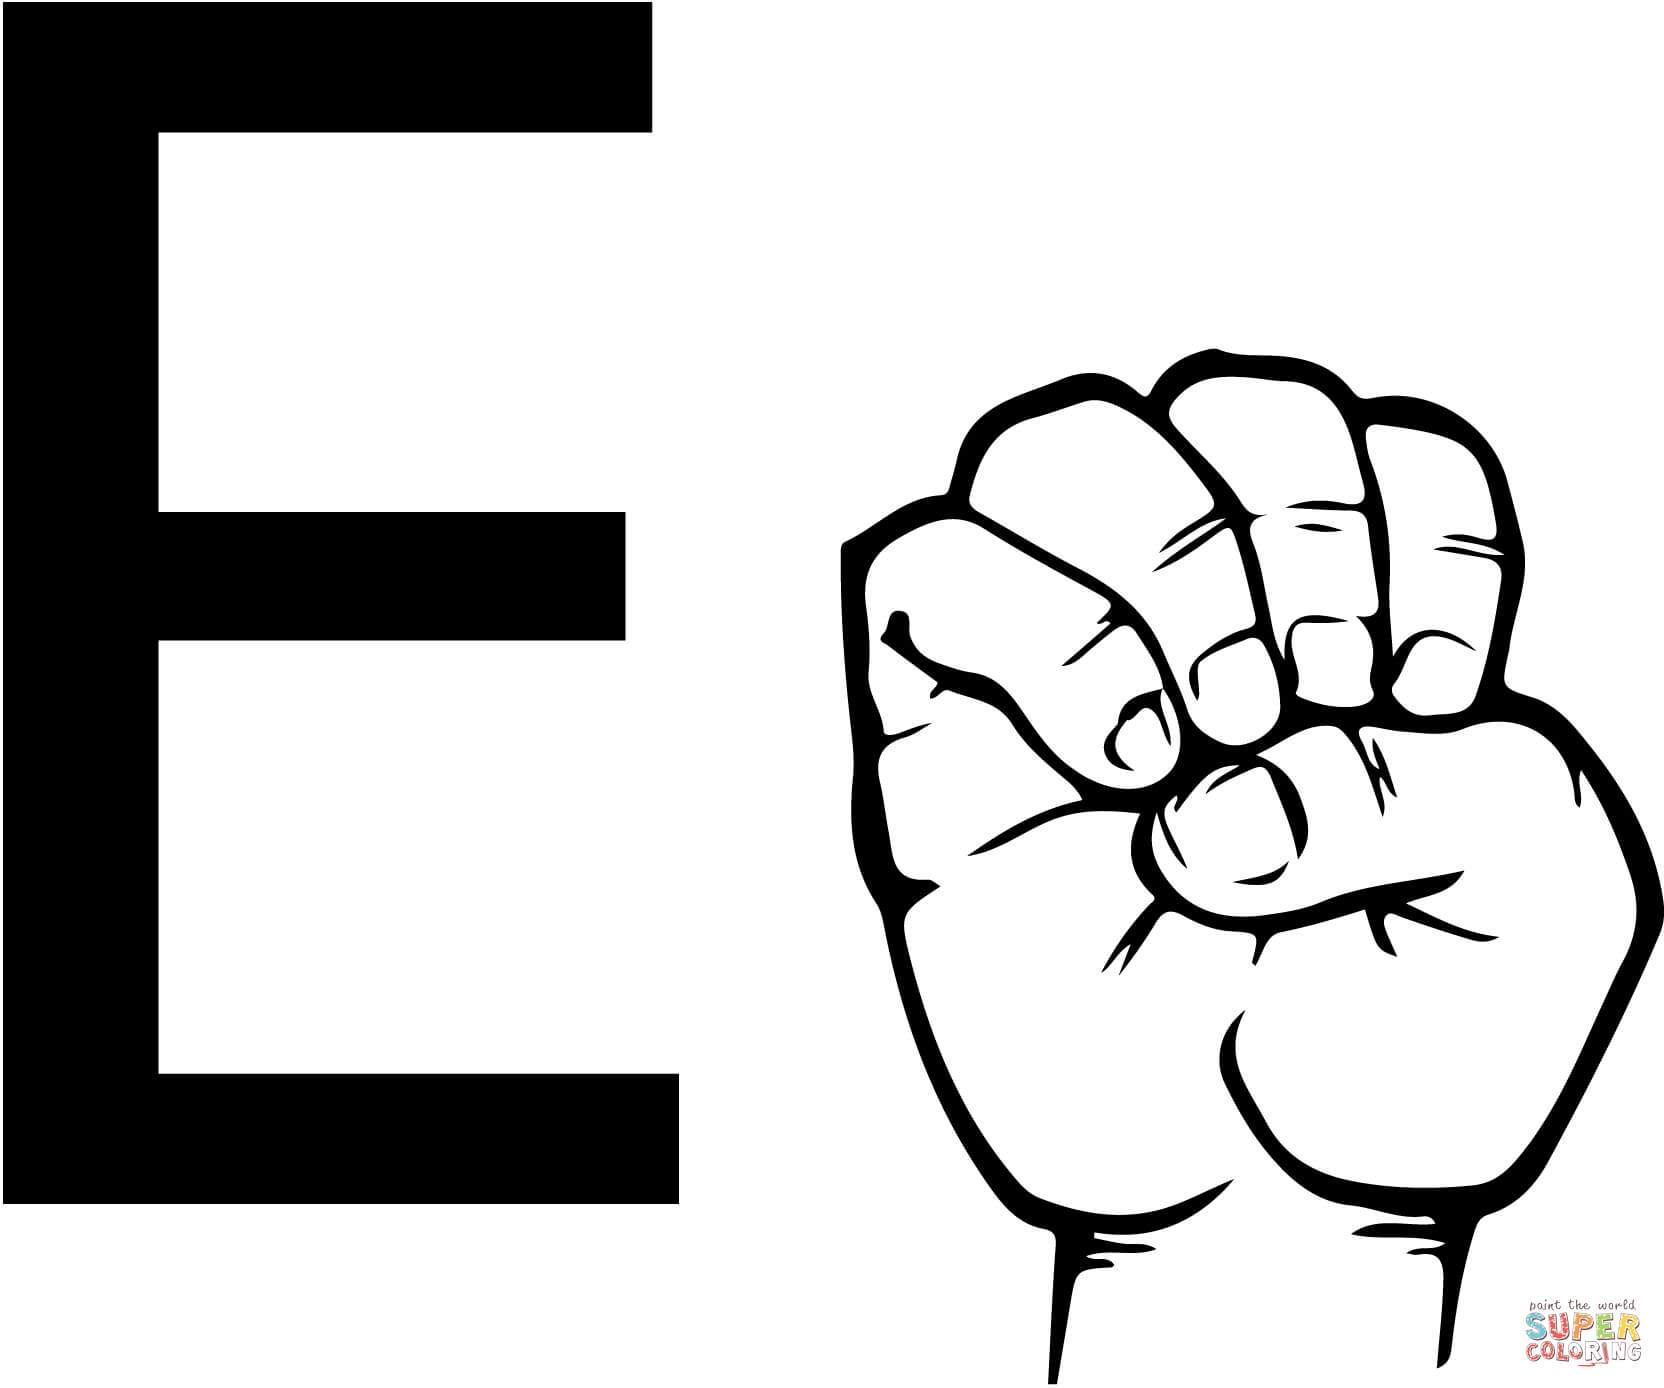 Sign language clipart letter e clipart free download Sign language clipart letter e - ClipartFest clipart free download